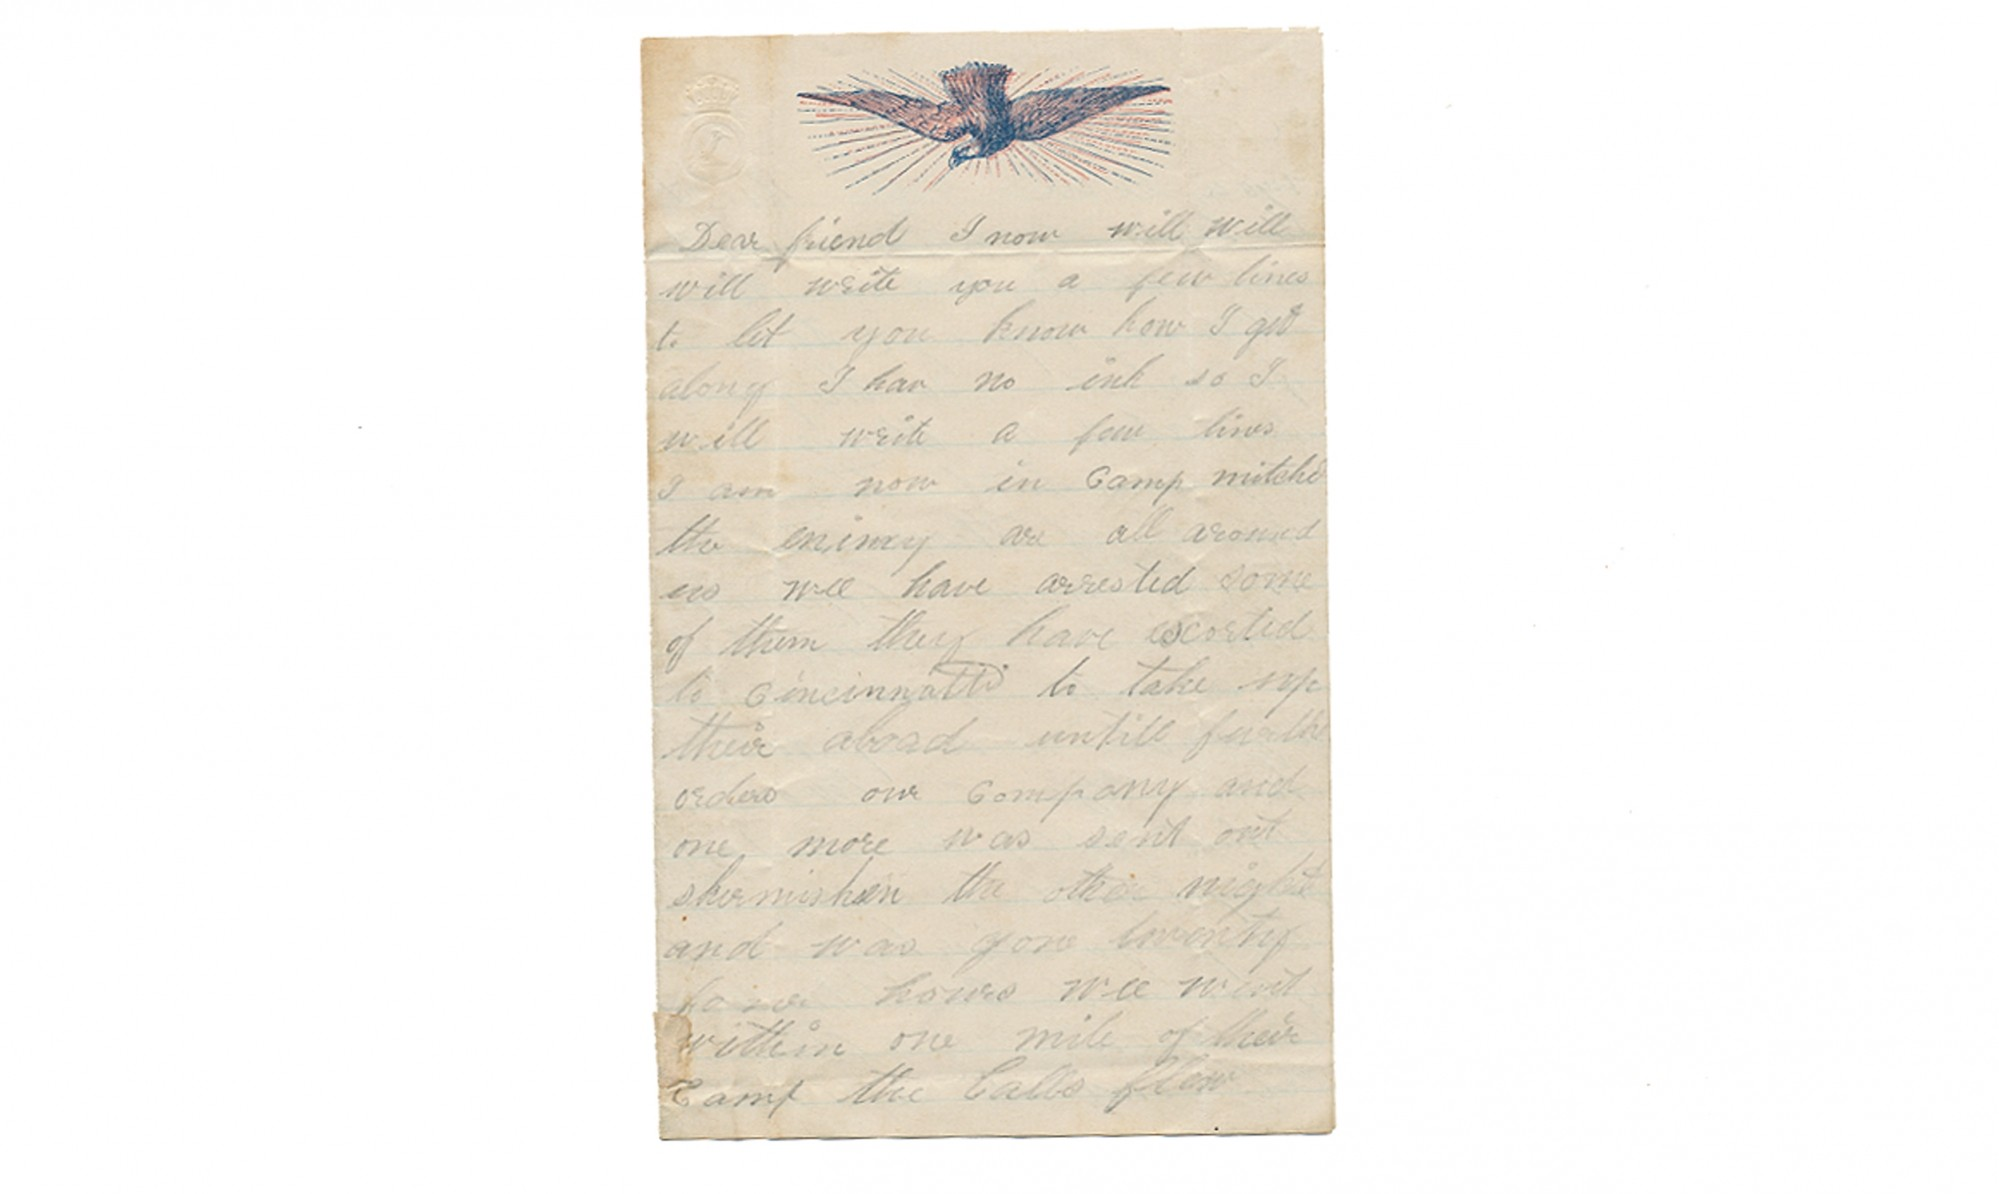 UNDATED FOUR PAGE LETTER WRITTEN BY PVT. CHARLES L. BONNEY, 103RD OHIO VOLUNTEERS